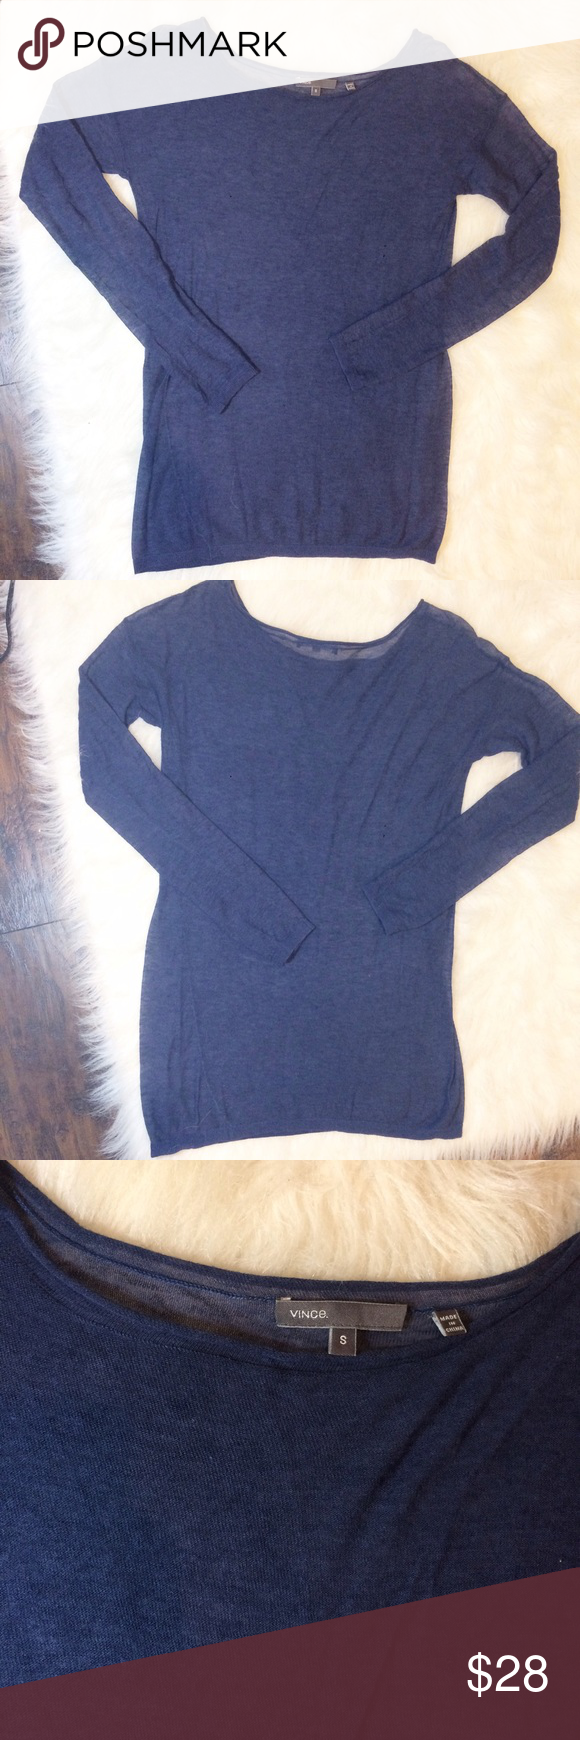 Vince. Sheer long sleeve shirt Lightweight and Sheer long sleeve shirt by Vince. Super soft and very comfortable! Very small snag on bottom, shown in photo. Almost unnoticeable, especially if worn under a cardigan! Size small. No care tag. No trades, offers welcome. Vince Tops Tees - Long Sleeve